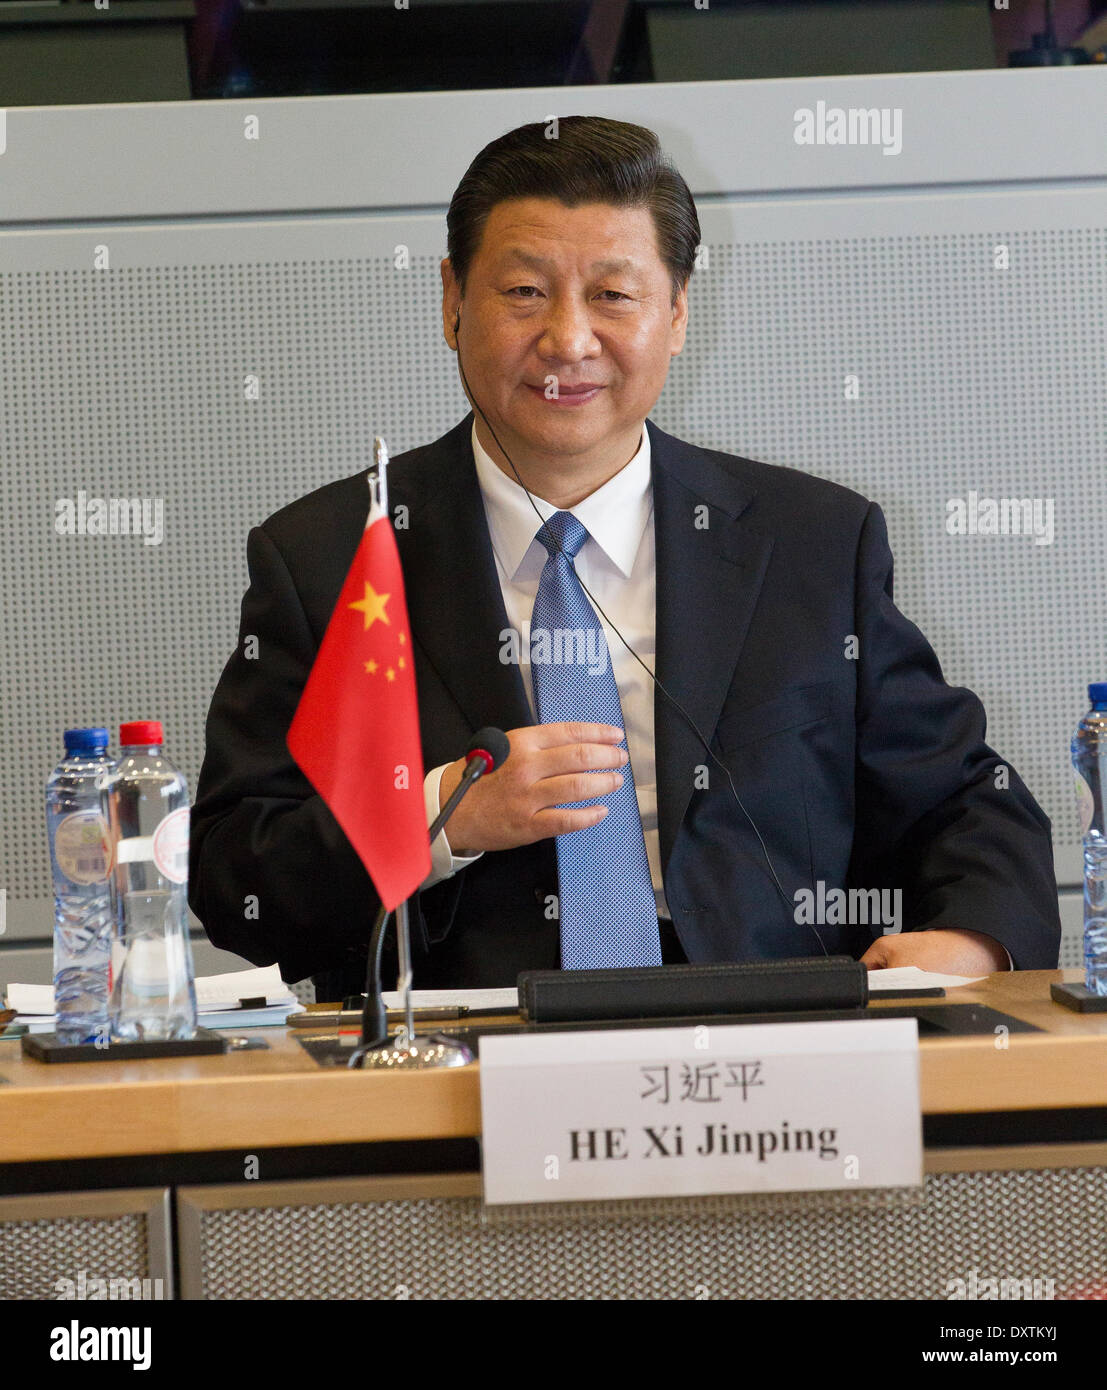 President Xi Jinping People's Republic of China - Stock Image